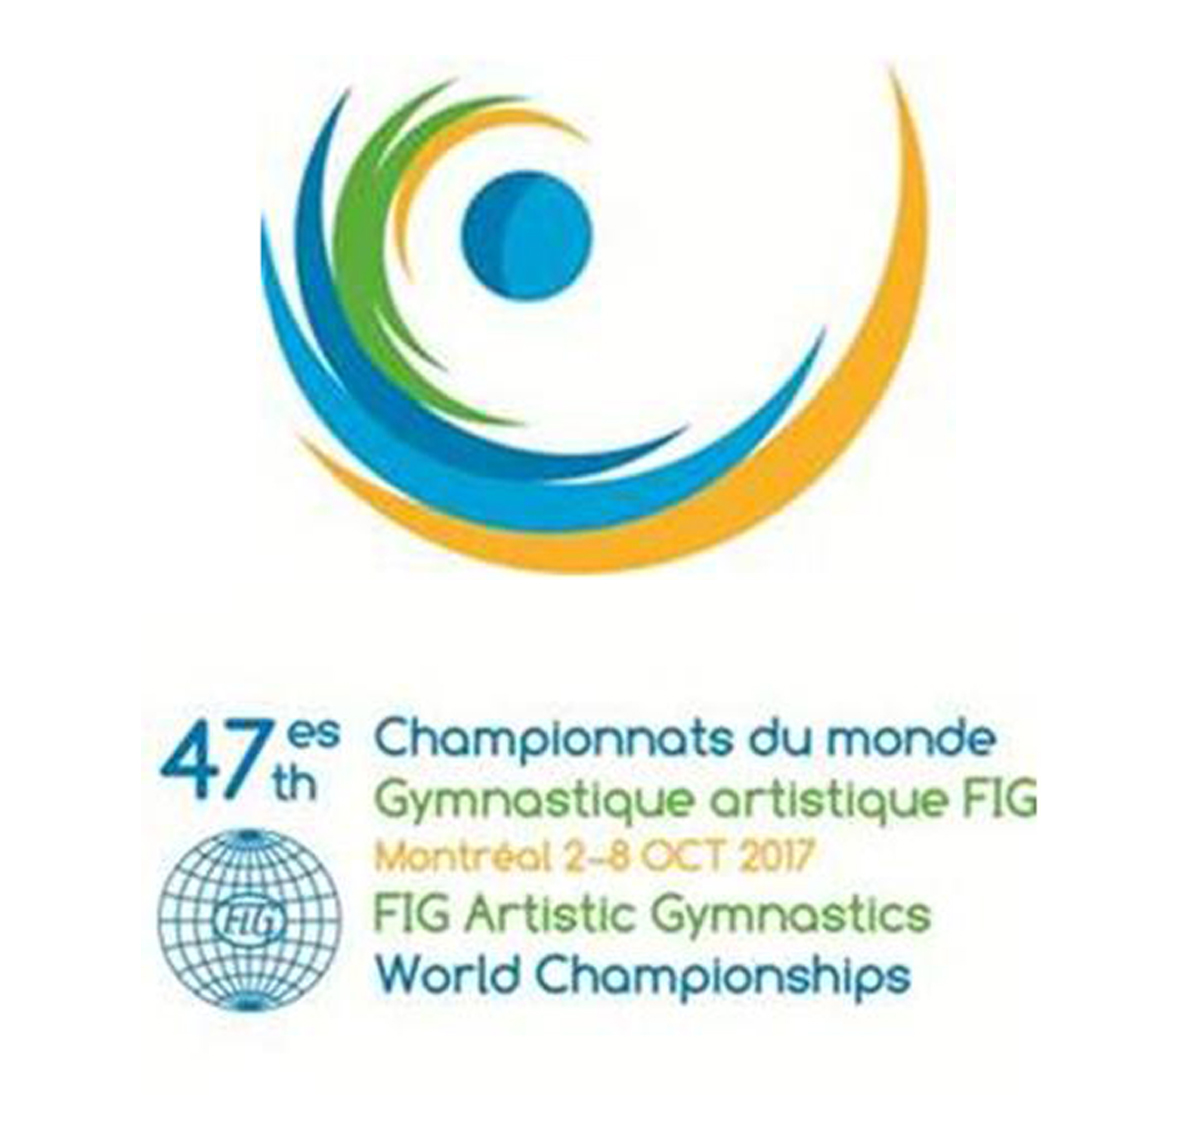 Artistic Gymnastics World Championships – from the 2nd to 8th of October 2017 - Montreal (Canada)